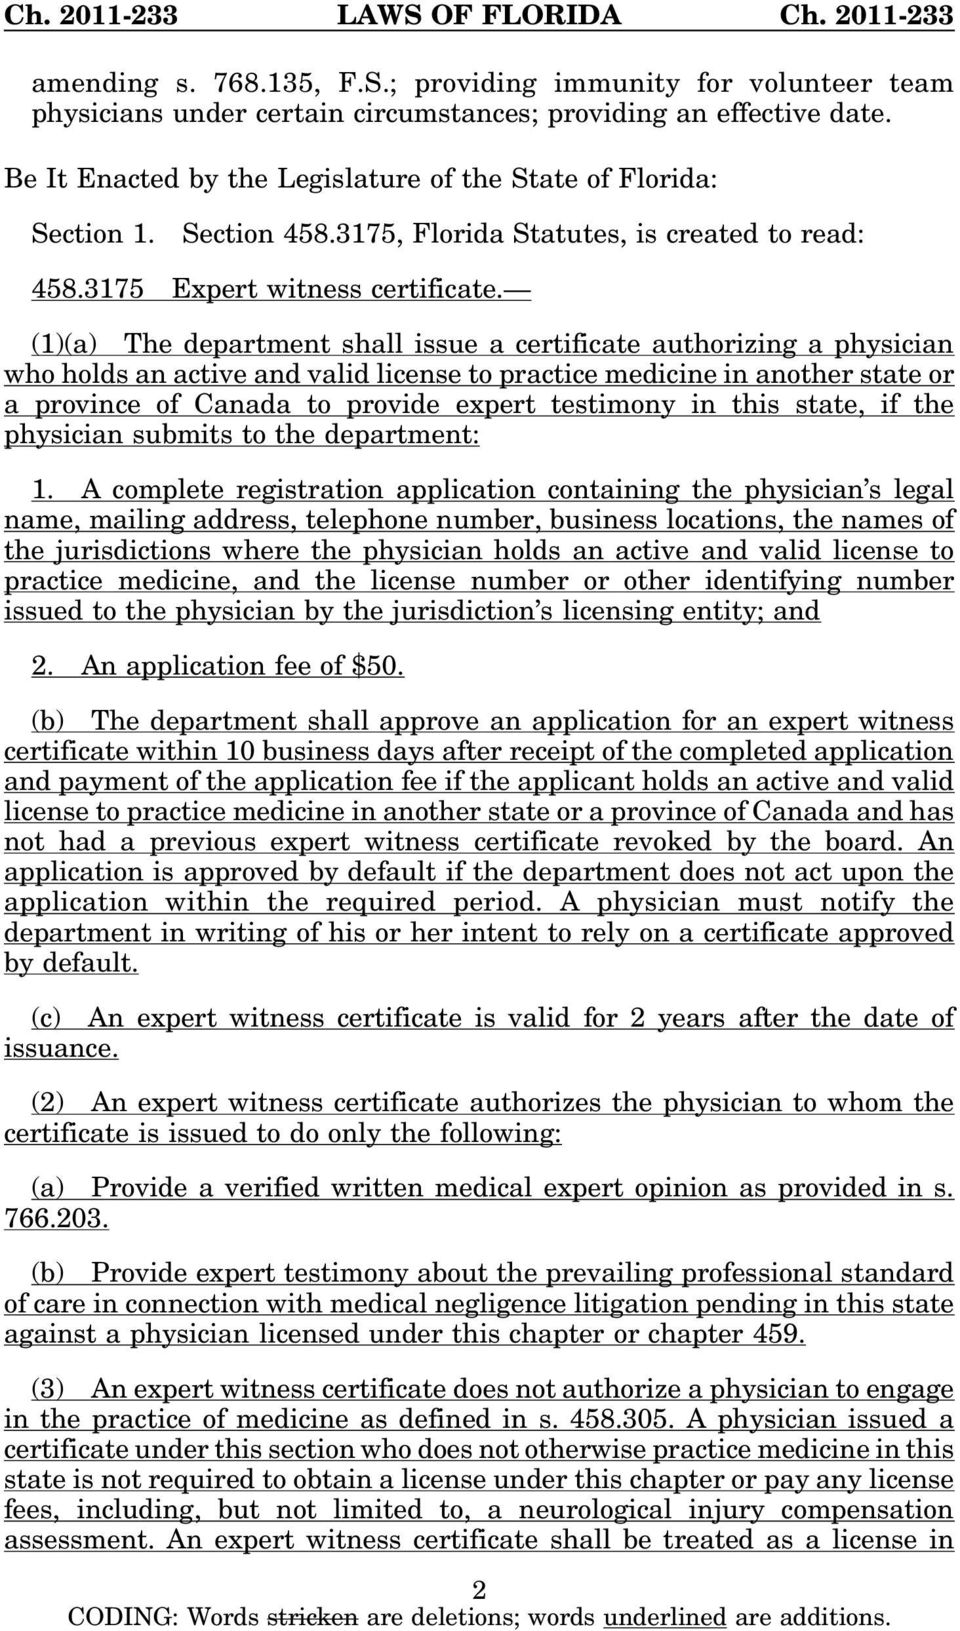 (1)(a) The department shall issue a certificate authorizing a physician who holds an active and valid license to practice medicine in another state or a province of Canada to provide expert testimony